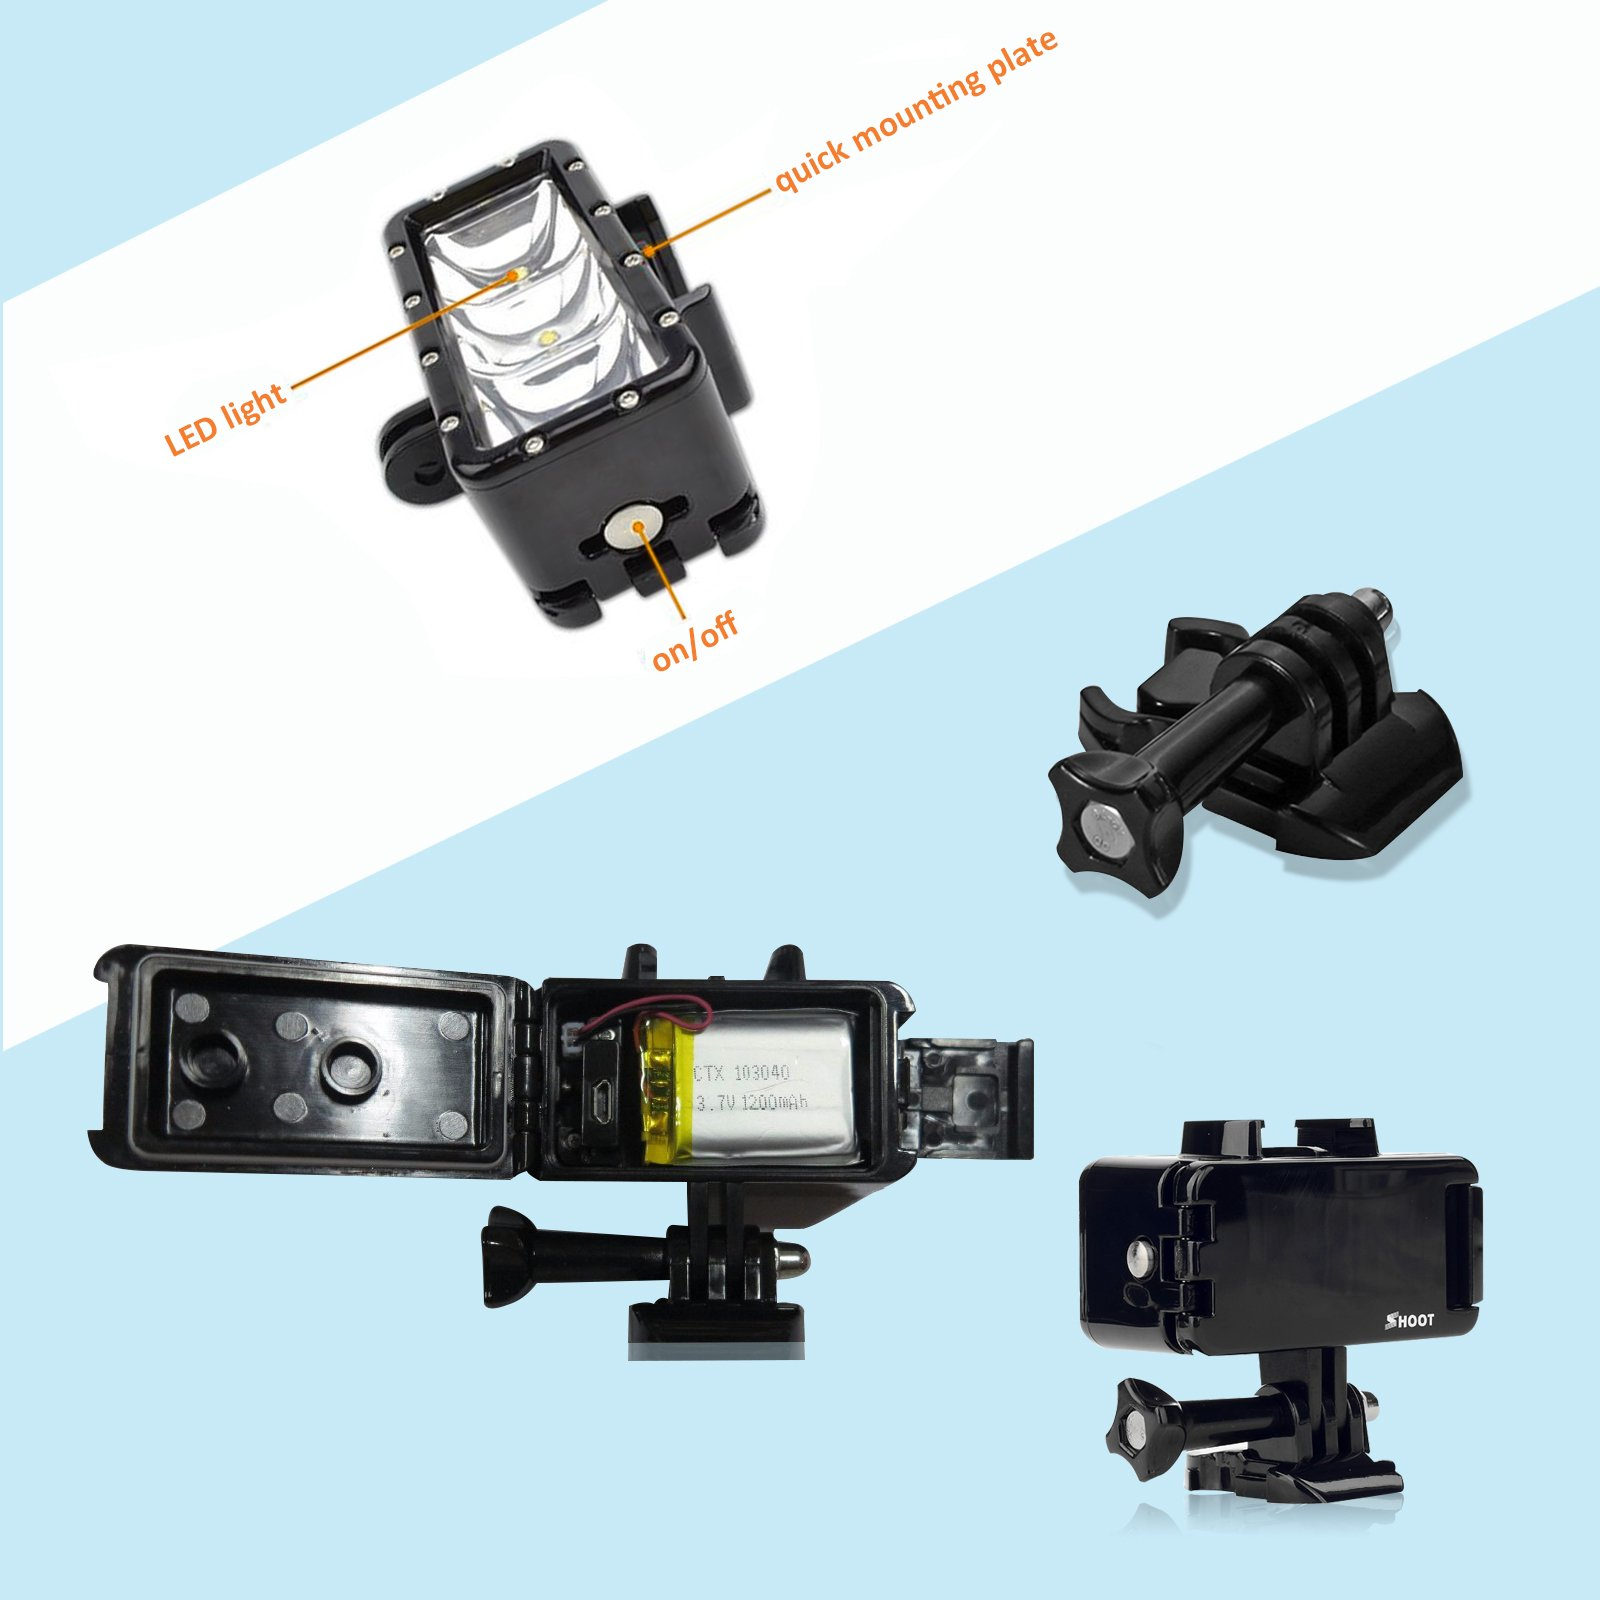 SHOOT Waterproof 30m Diving Light High Power Dimmable LED Underwater Fill Light for GoPro Hero 6/5/5S/4/4S/3+,Campark AKASO DBPOWER Crosstour SHOOT Camera with 1200mAh Built-in Rechargeable Battery by SHOOT (Image #4)